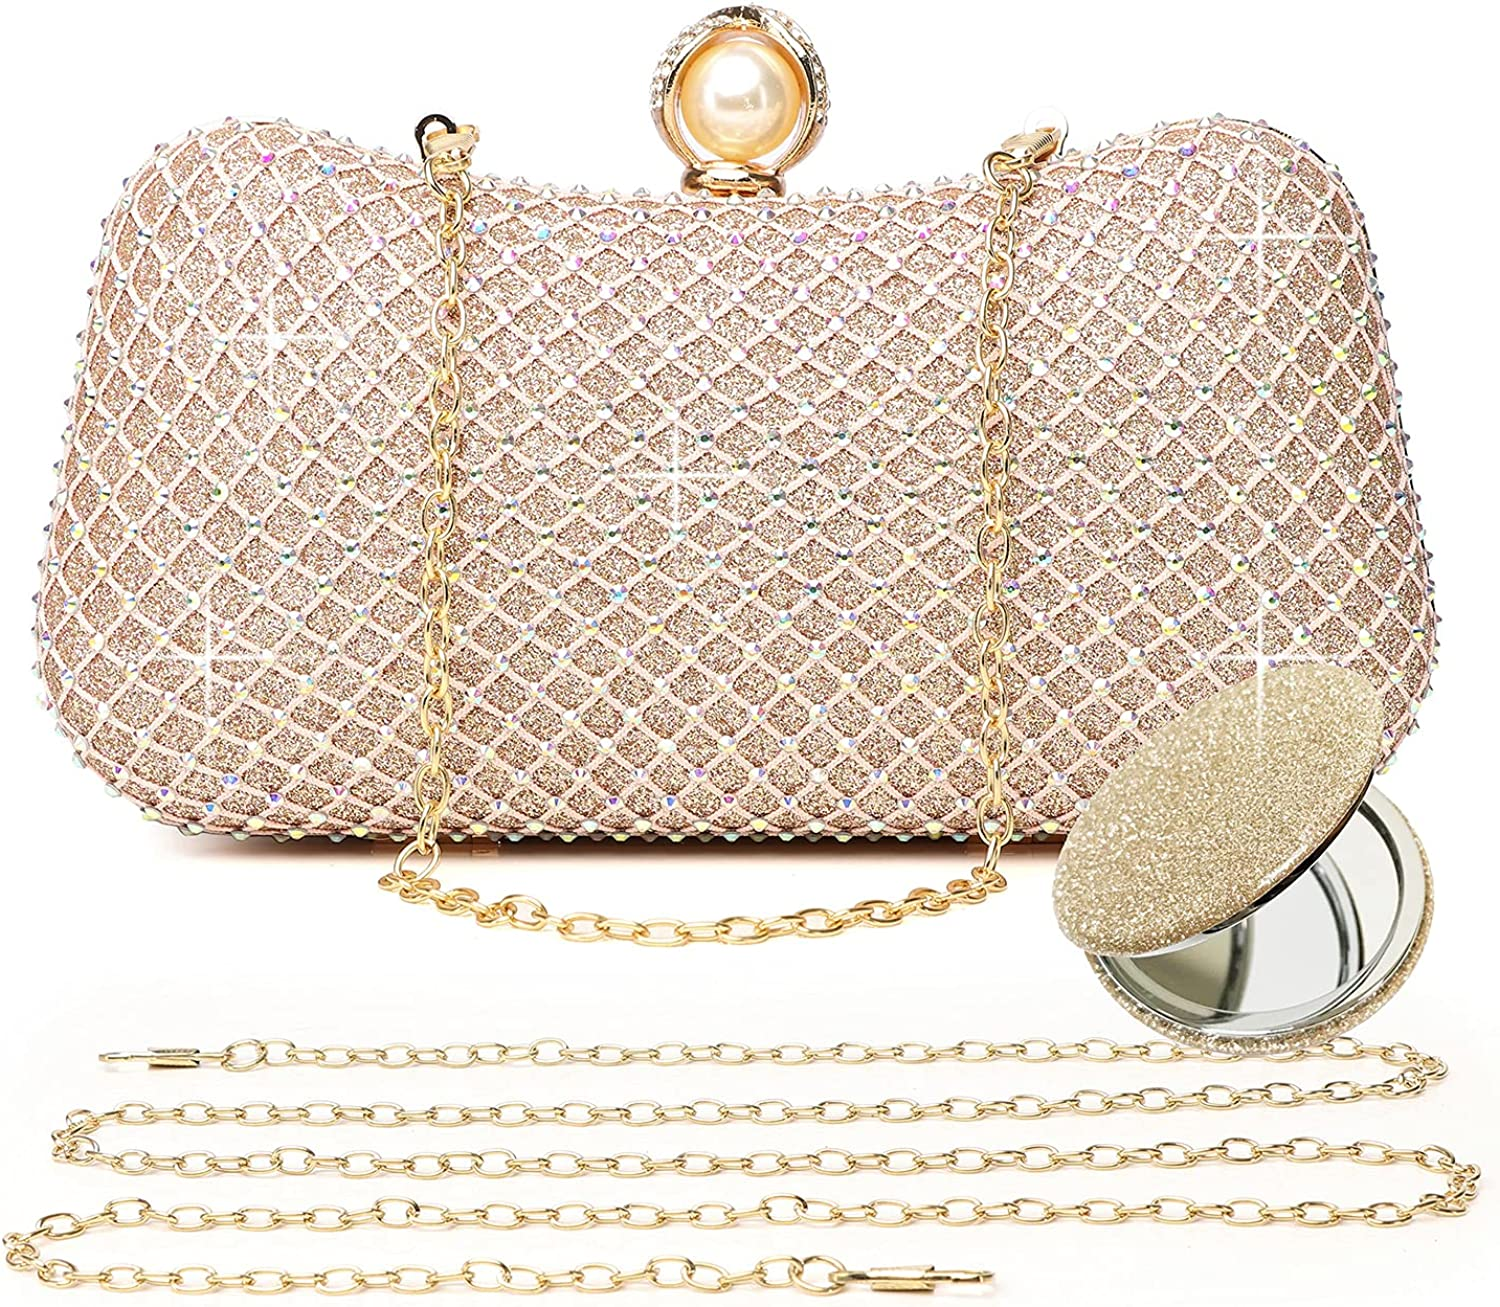 Colored diamonds clutch Ranking TOP14 purses for bags h wedding women evening Quality inspection